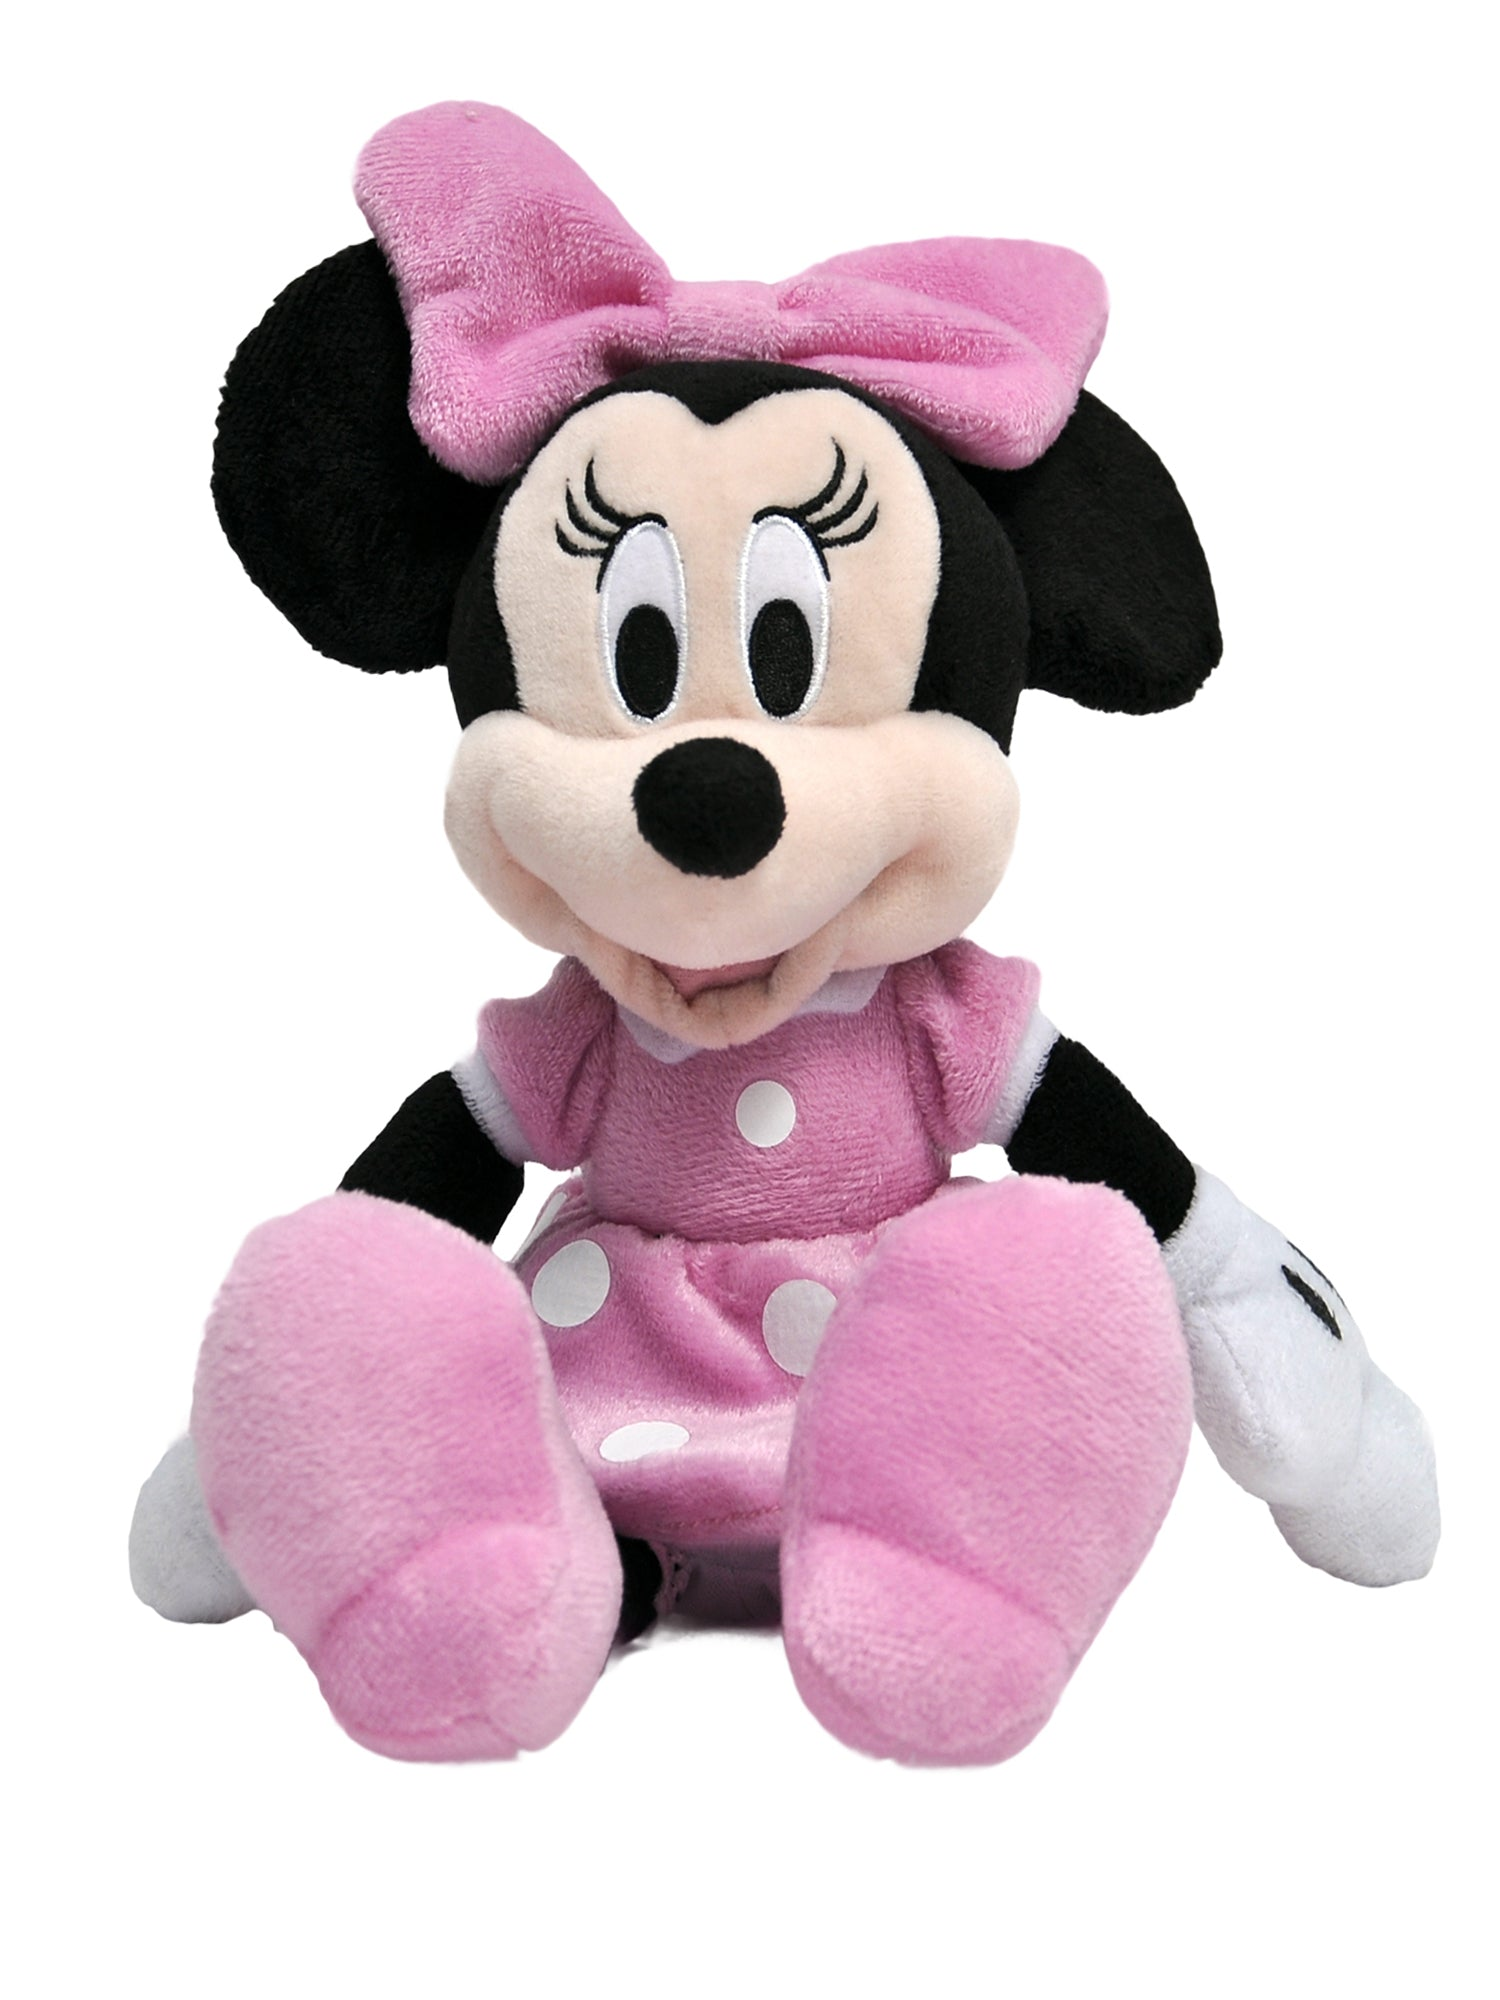 "Disney Minnie Mouse Plush Doll 11"" Pink Toy"